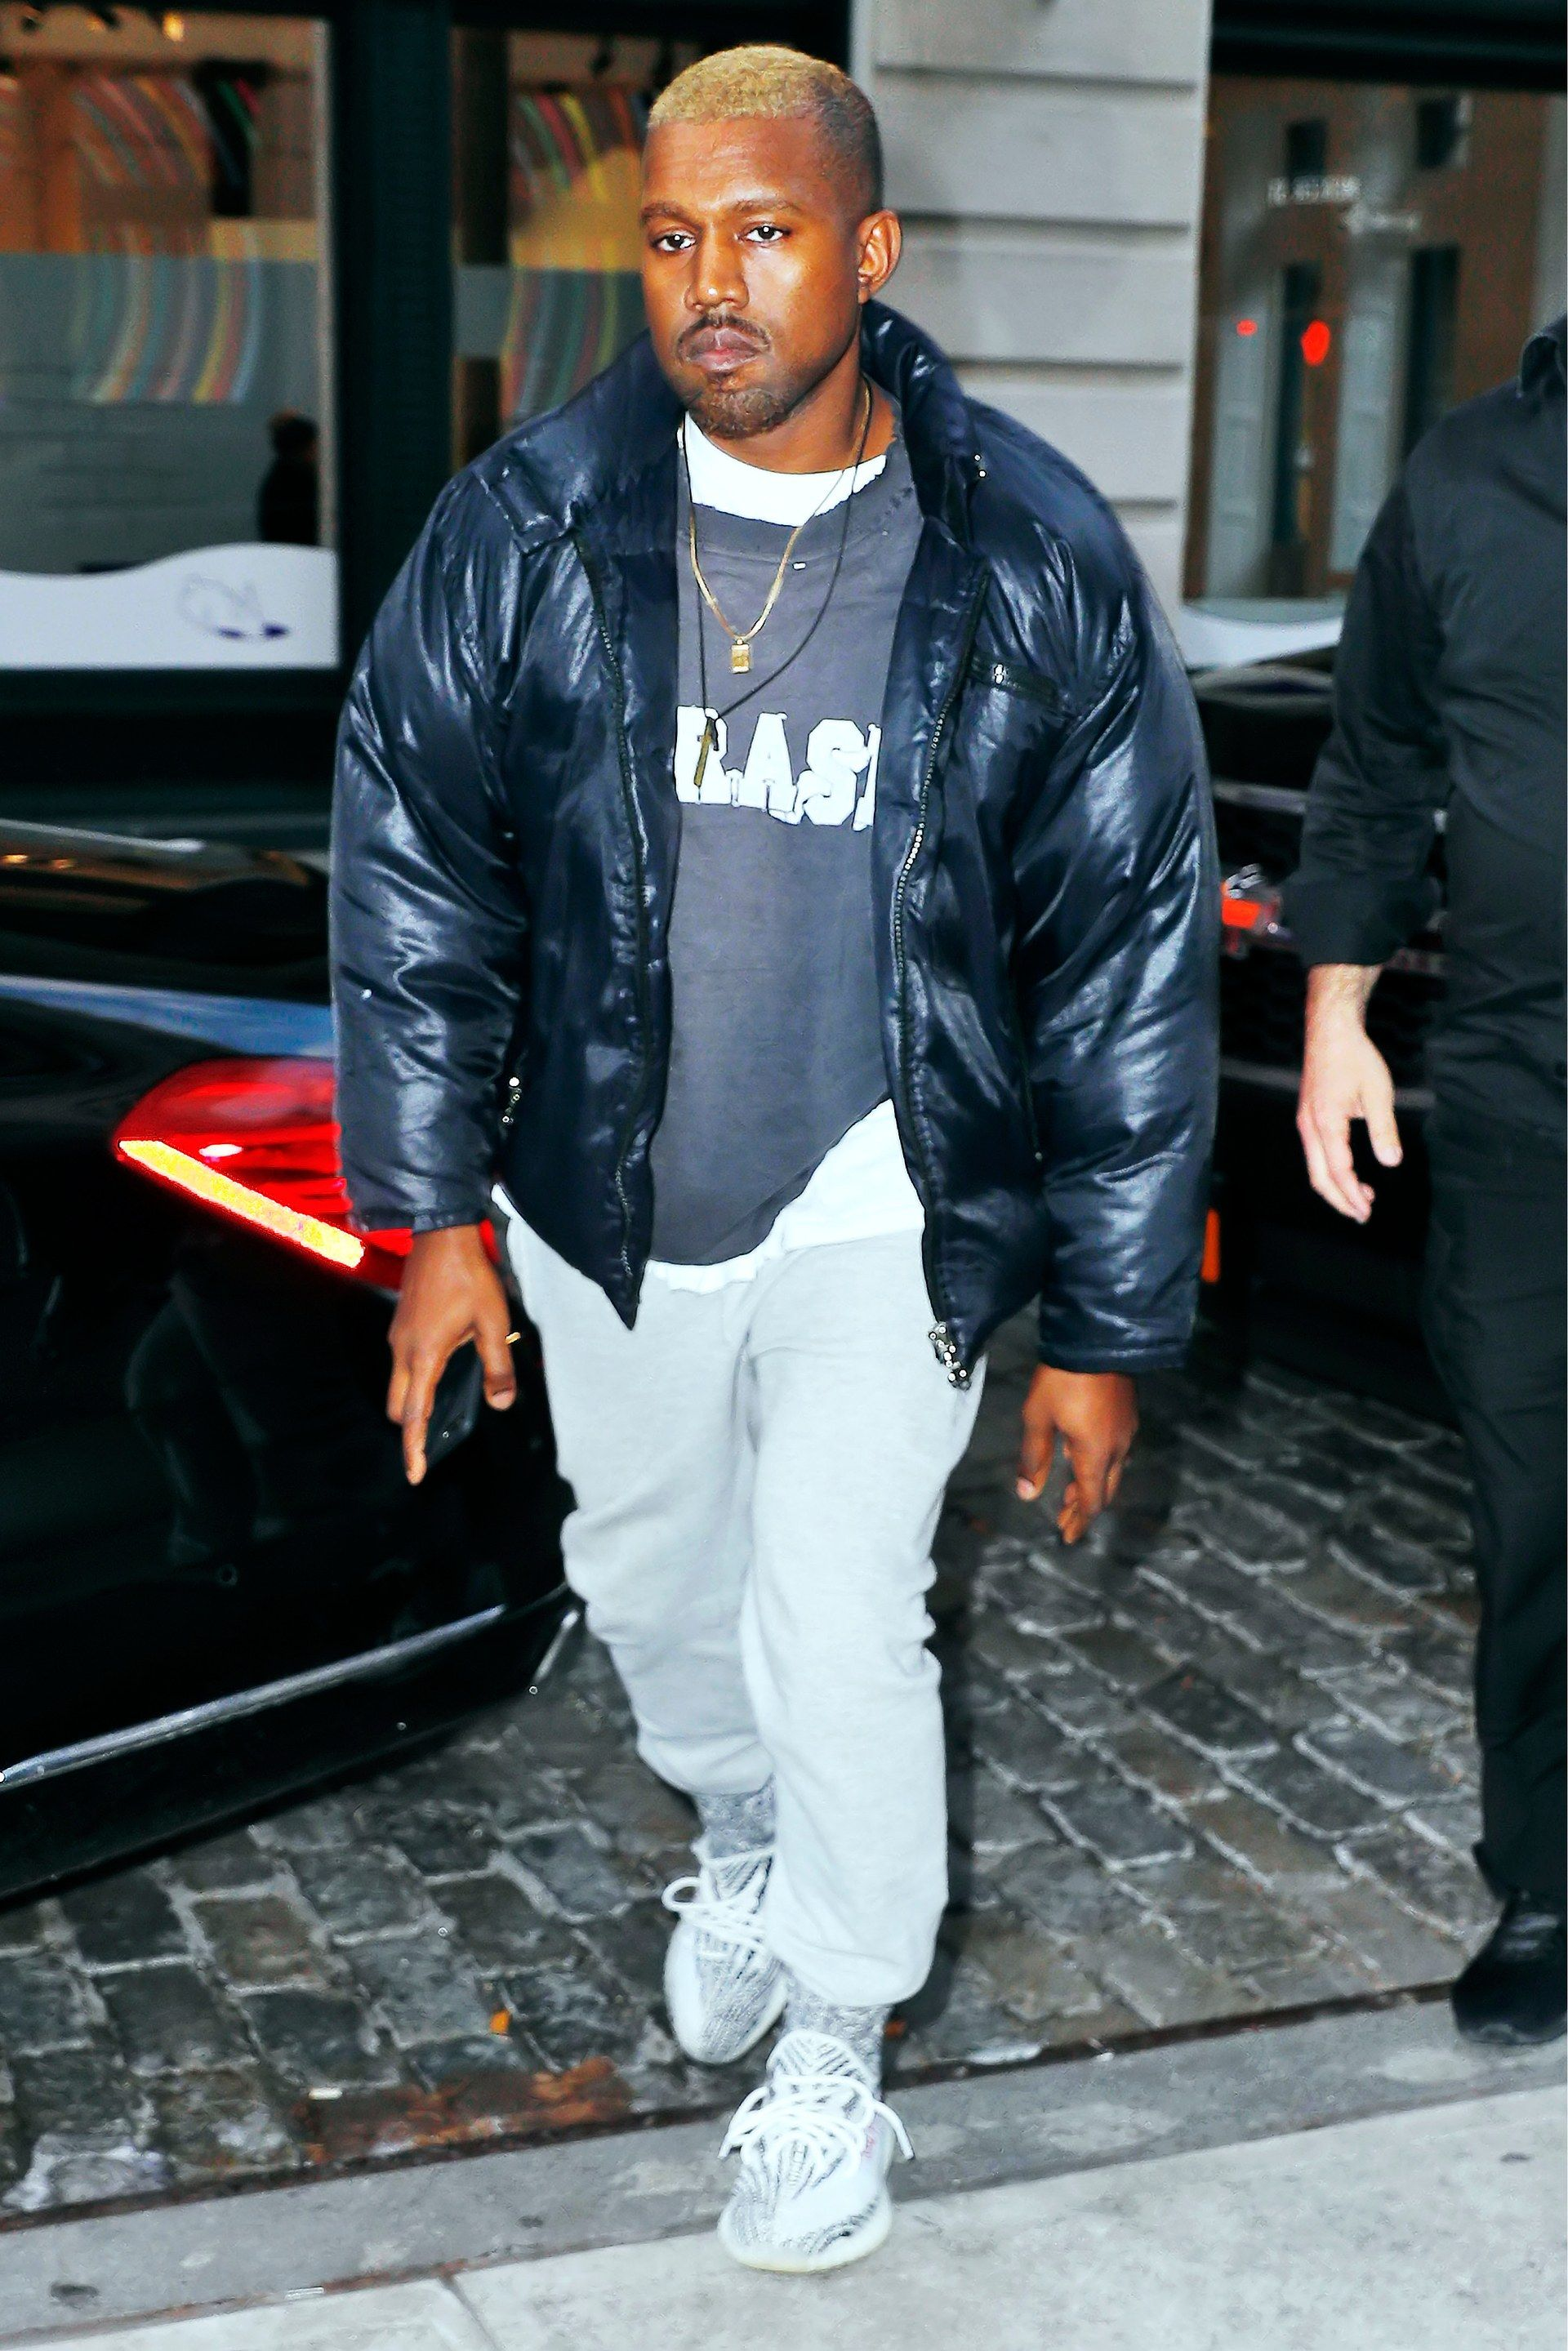 The Kanye West Look Book Kanye West Style Kanye West Outfits Kanye West